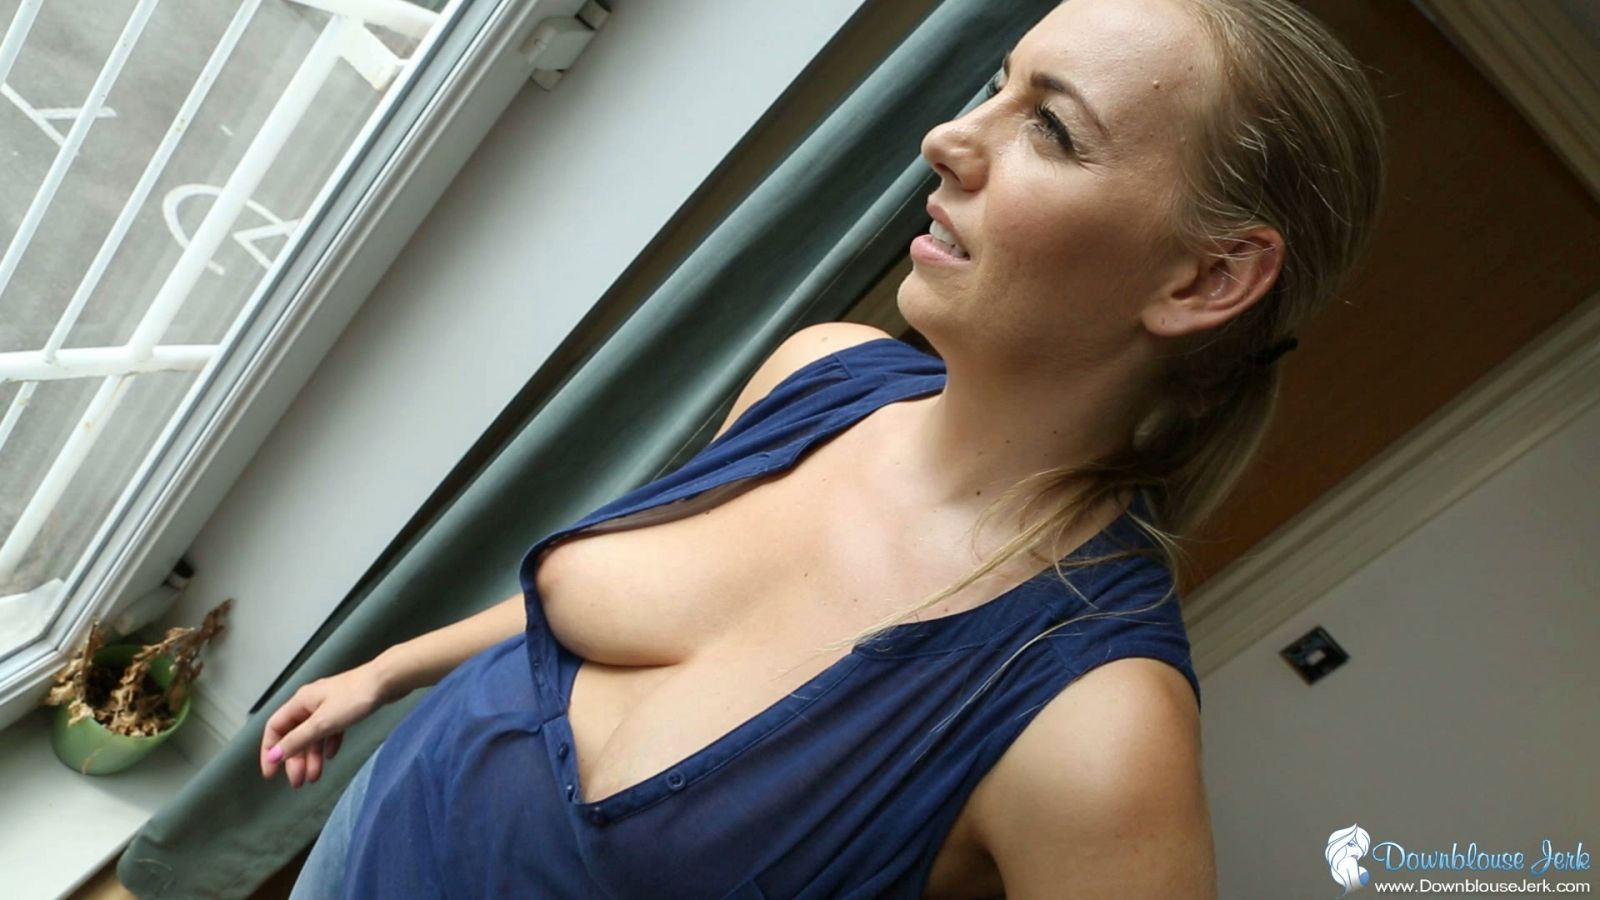 downblouse hd